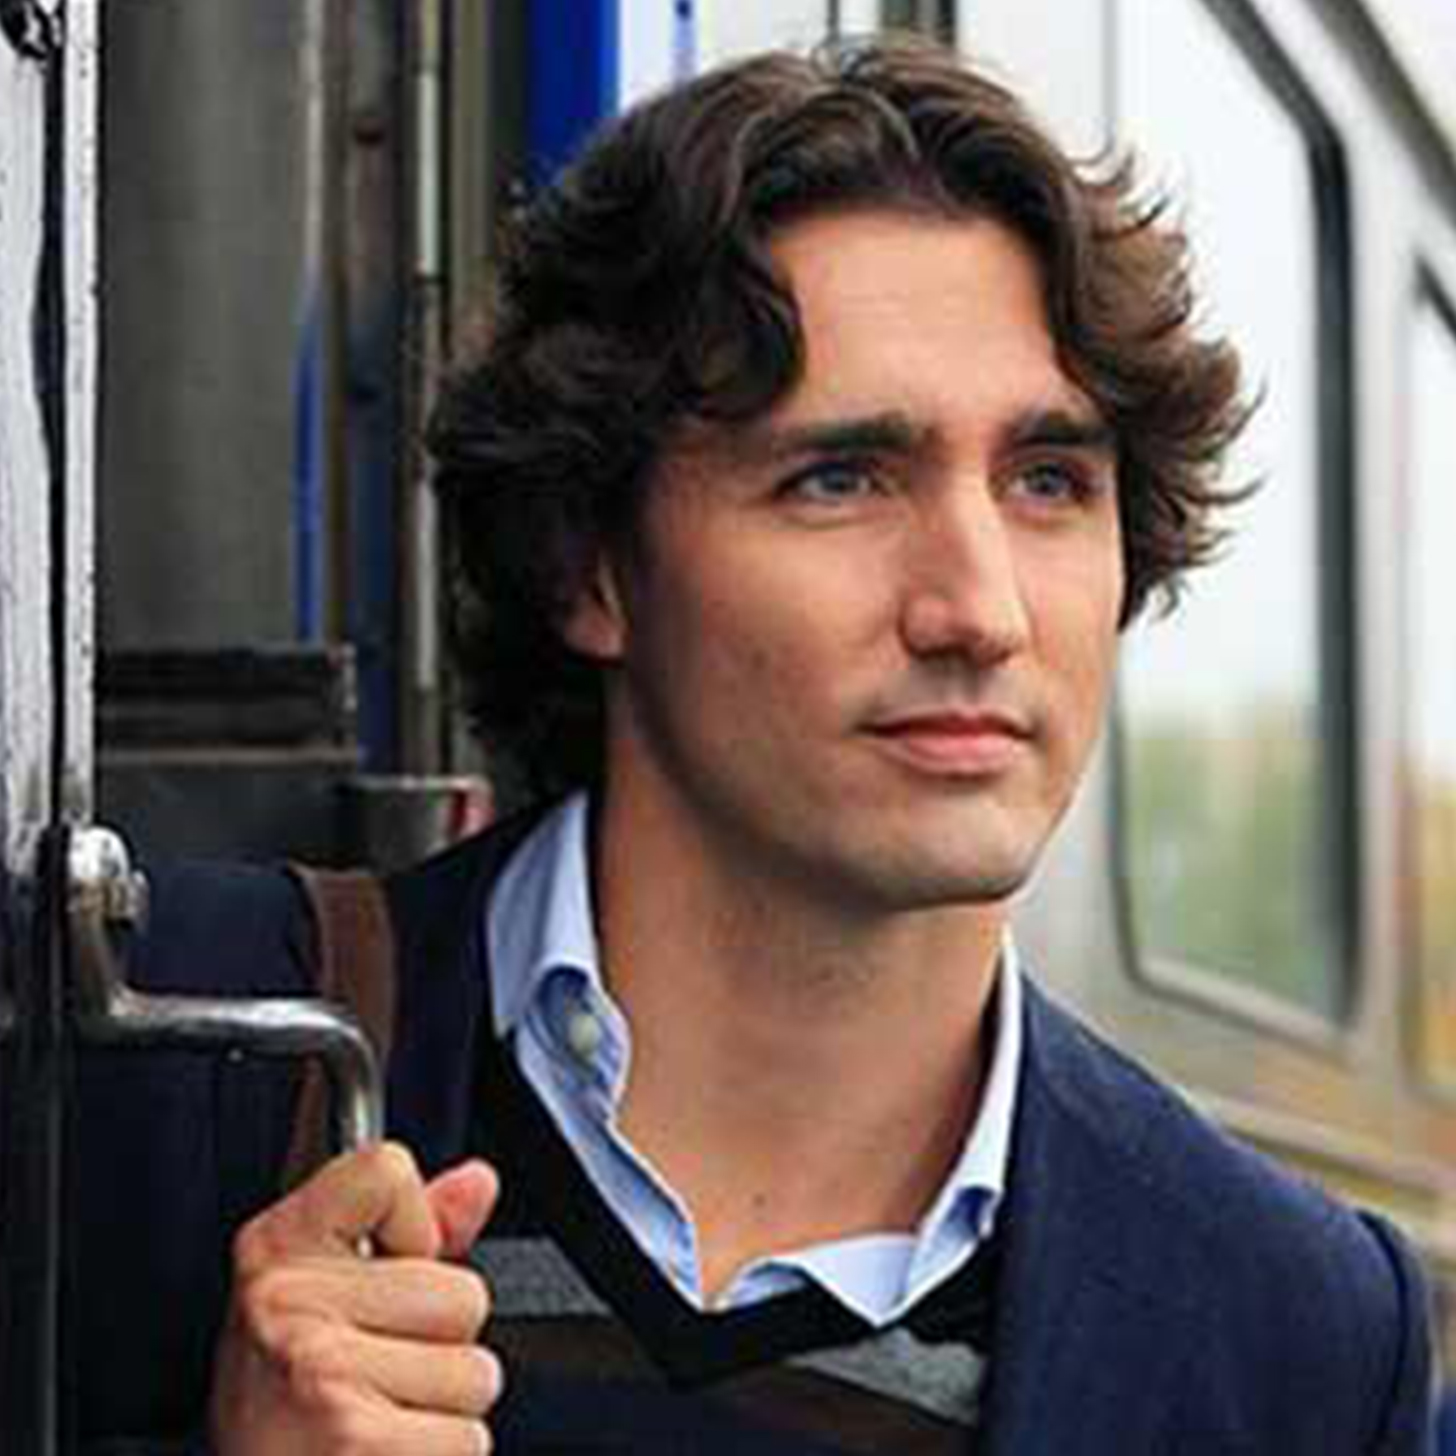 Justin Trudeau Prime Minister Of Canada Poses For A: Canada's Prime Minster Justin Trudeau Is A Hot Hipster